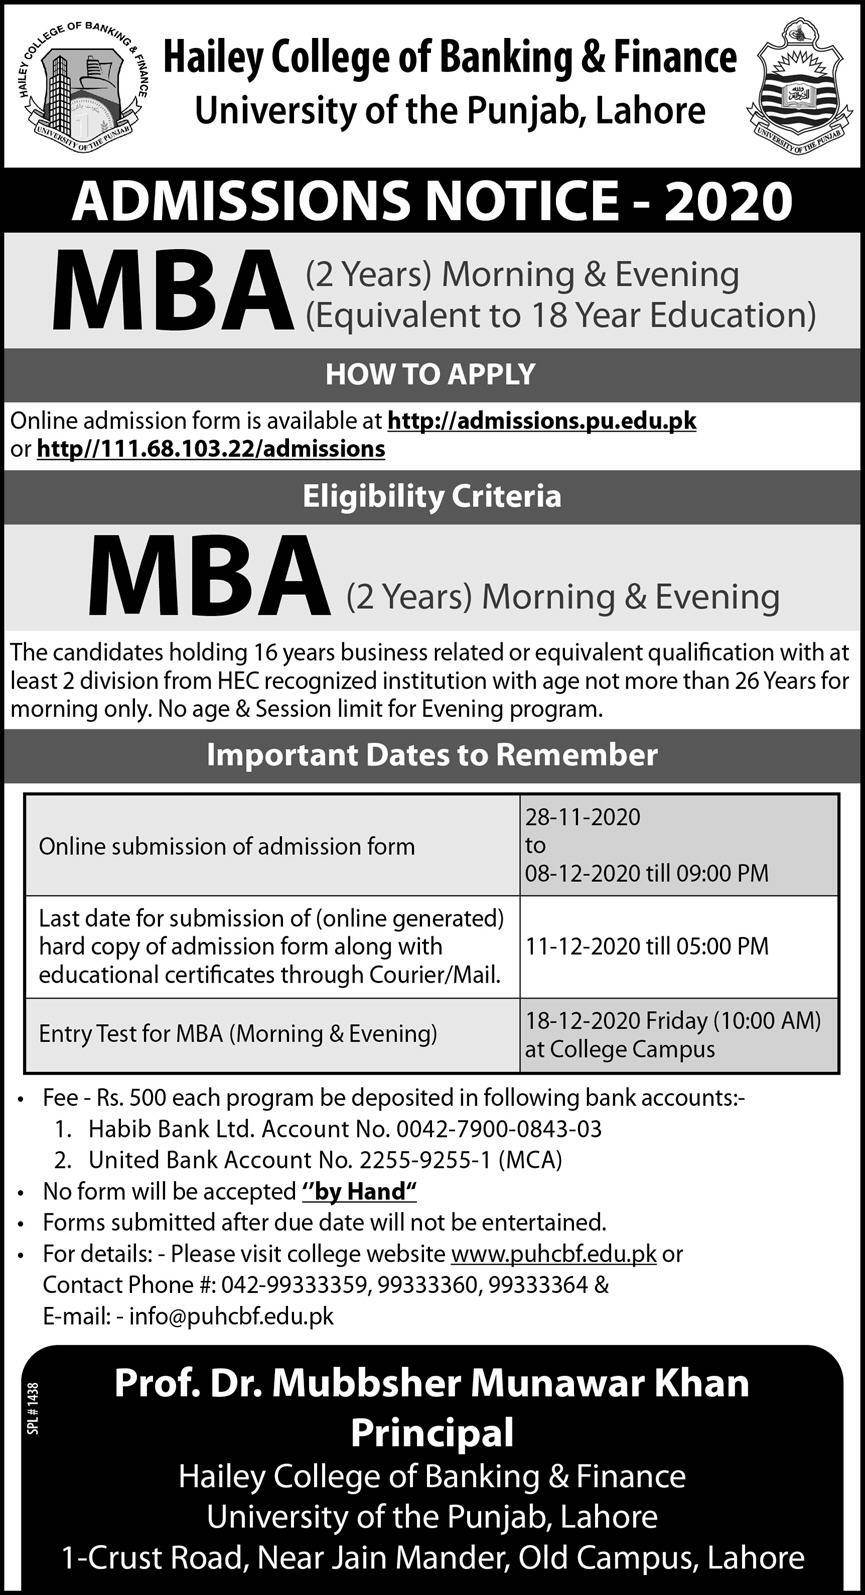 Hailey College of Banking & Finance MBA Evening Admission 2020